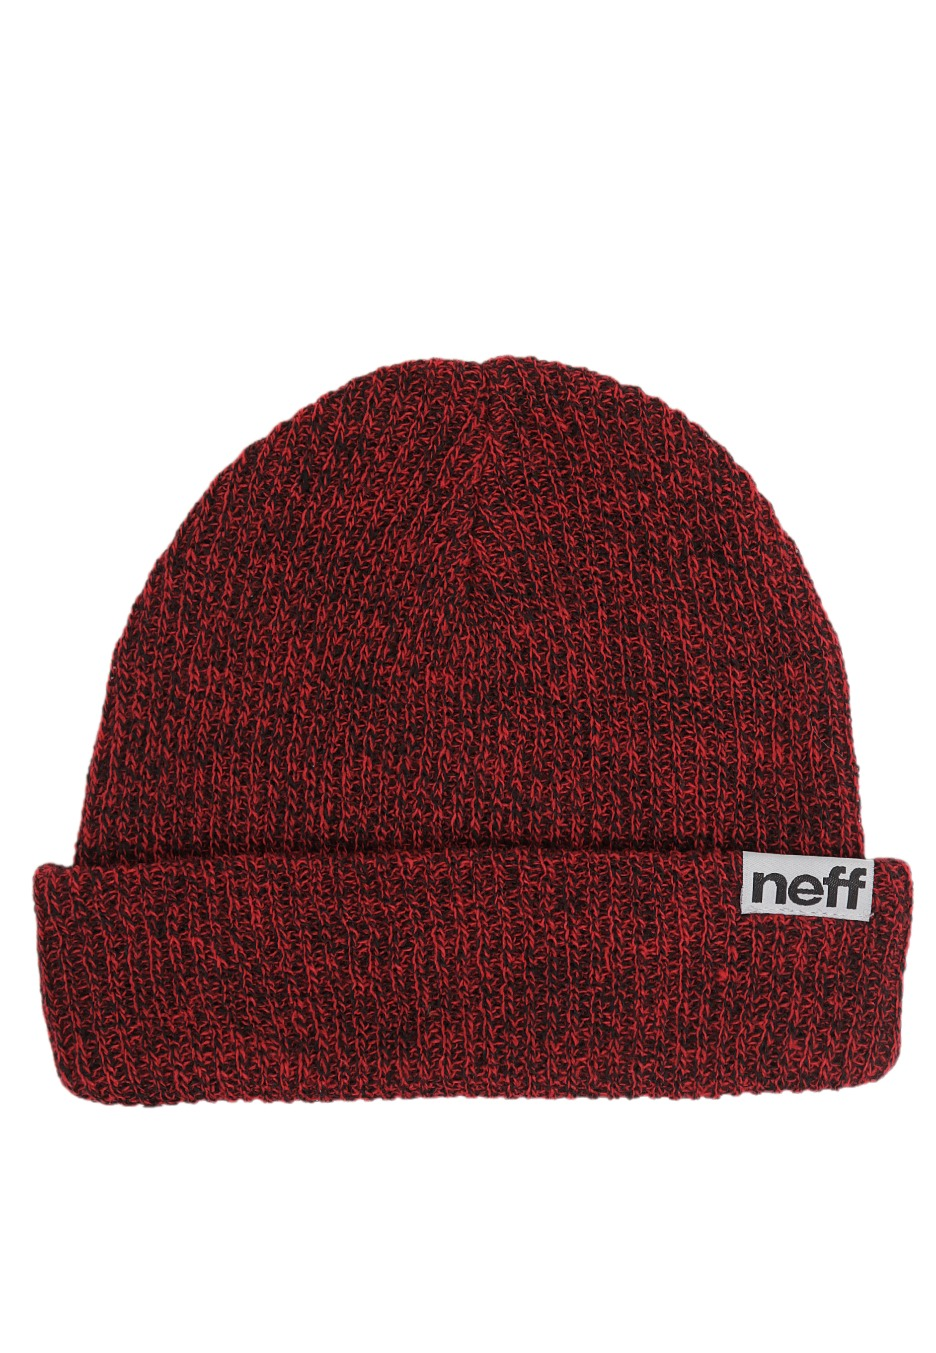 Neff - Fold Heather Black Red - Beanie - Streetwear Shop - Impericon ... f25d8f1d296